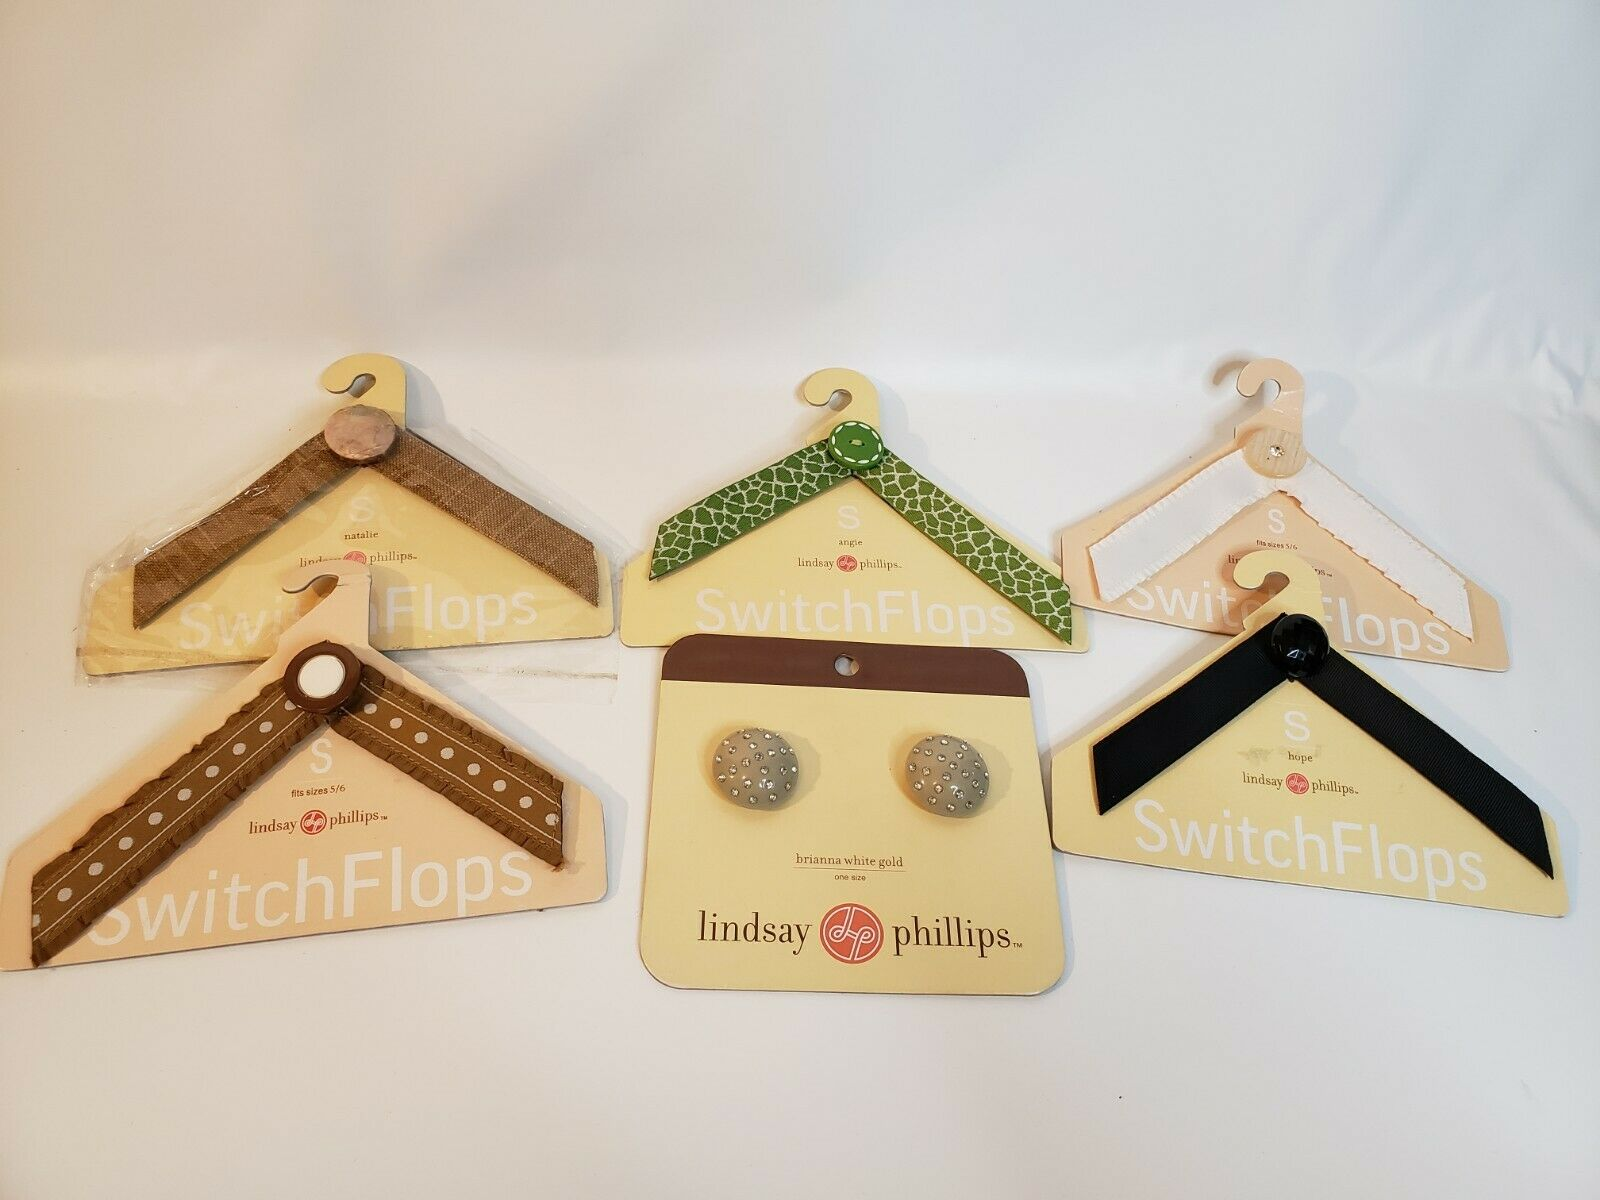 Lindsay Phillips Switchflops Straps Lot Of 6 Size S